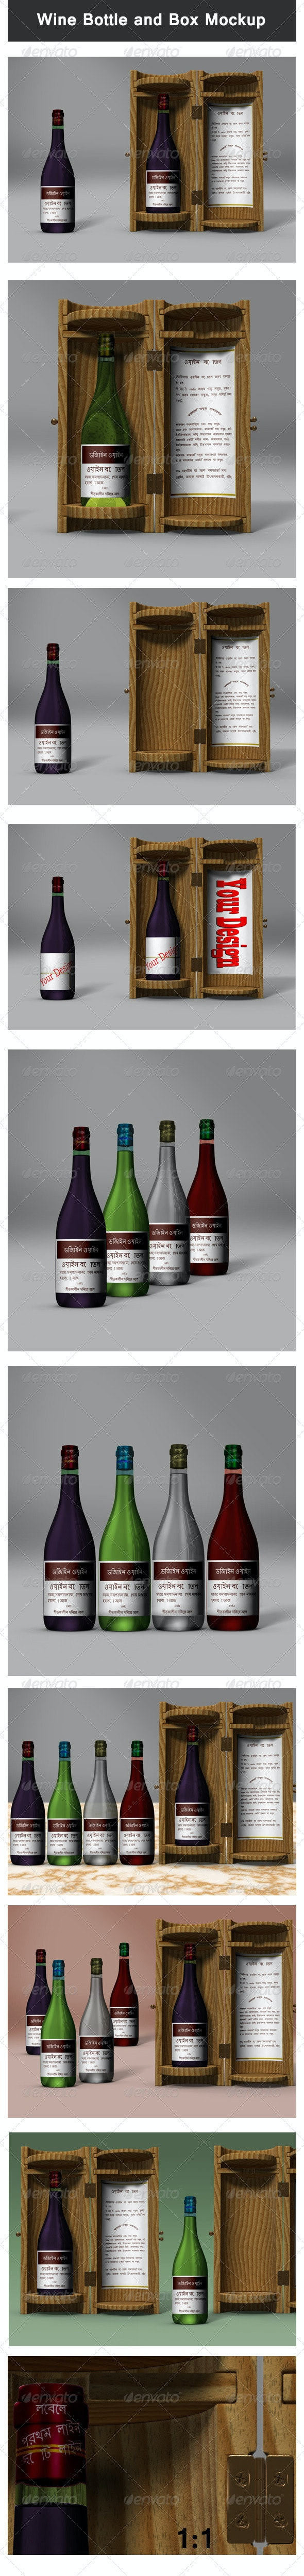 Wine Bottle and Box Mock-up - Food and Drink Packaging